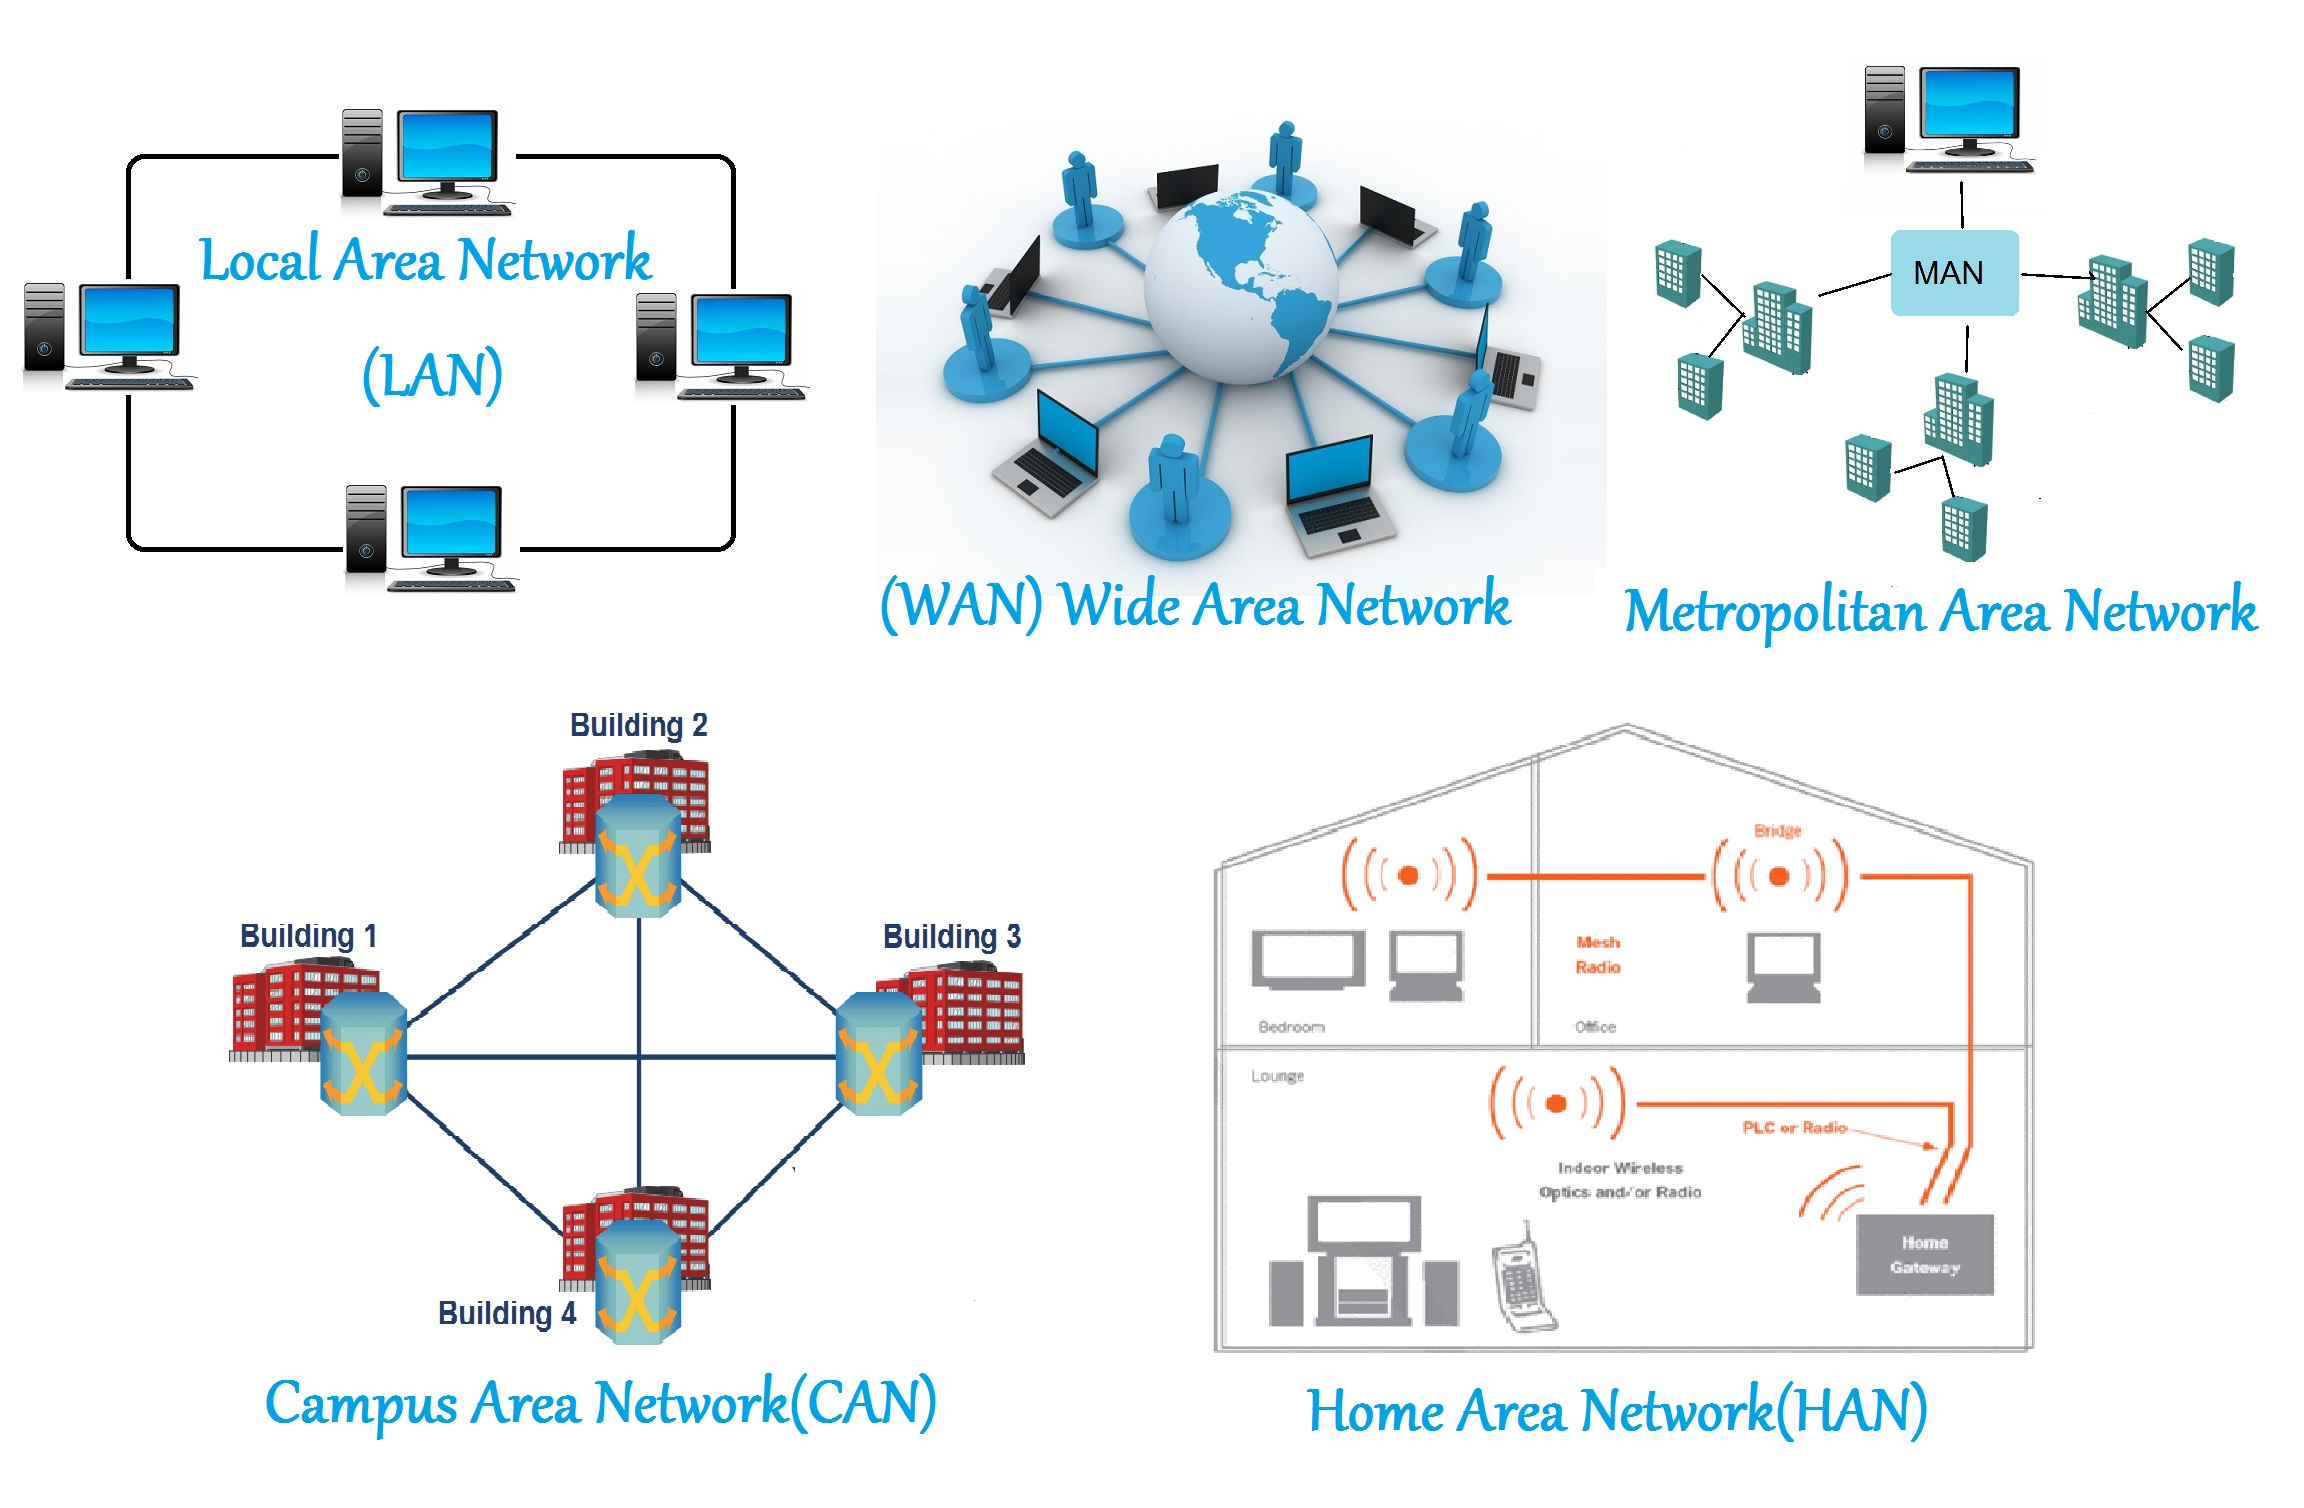 hight resolution of lan or local area network it is a computer network that covers a small geographical area like an office building school colleges etc where wired or